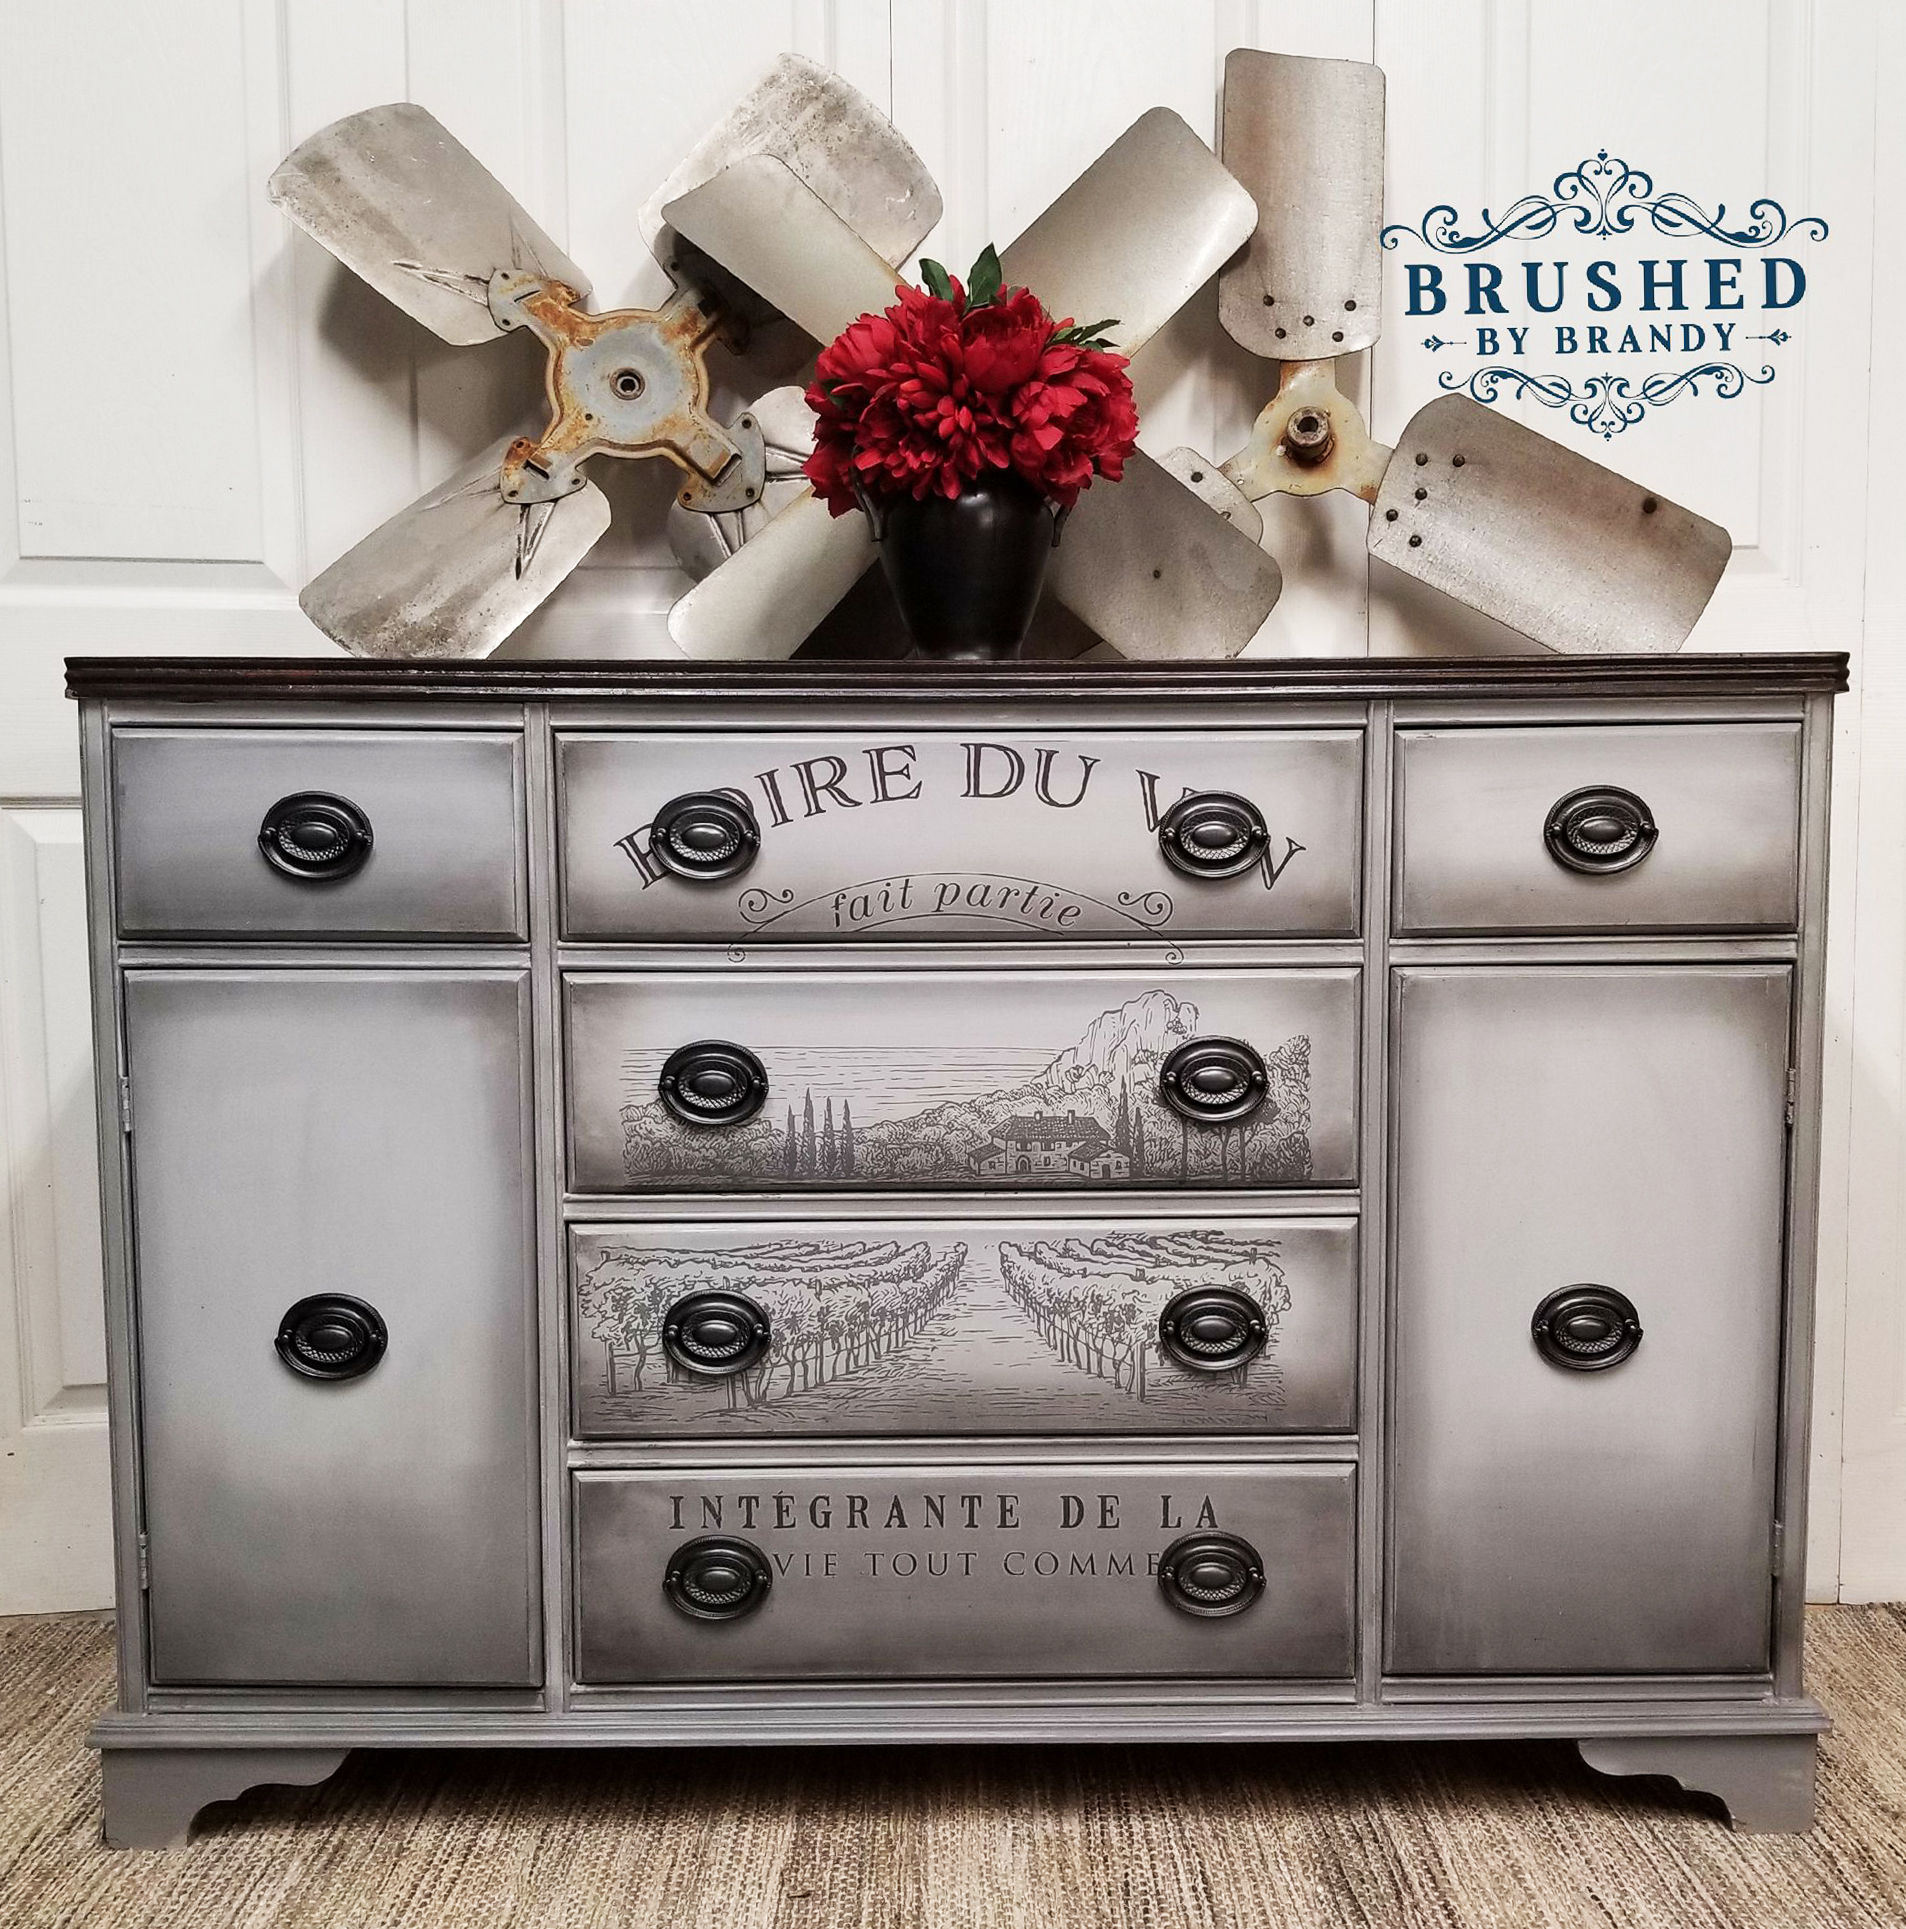 This sweet buffet was given new life in a monochromatic tones along with the addition of our Boire De Vin transfer. The blending and highlights really accentuate the transfer perfectly. She used Manatee Gray, Gravel Road and Grunge Gray wax by Dixie Belle. LOVE!